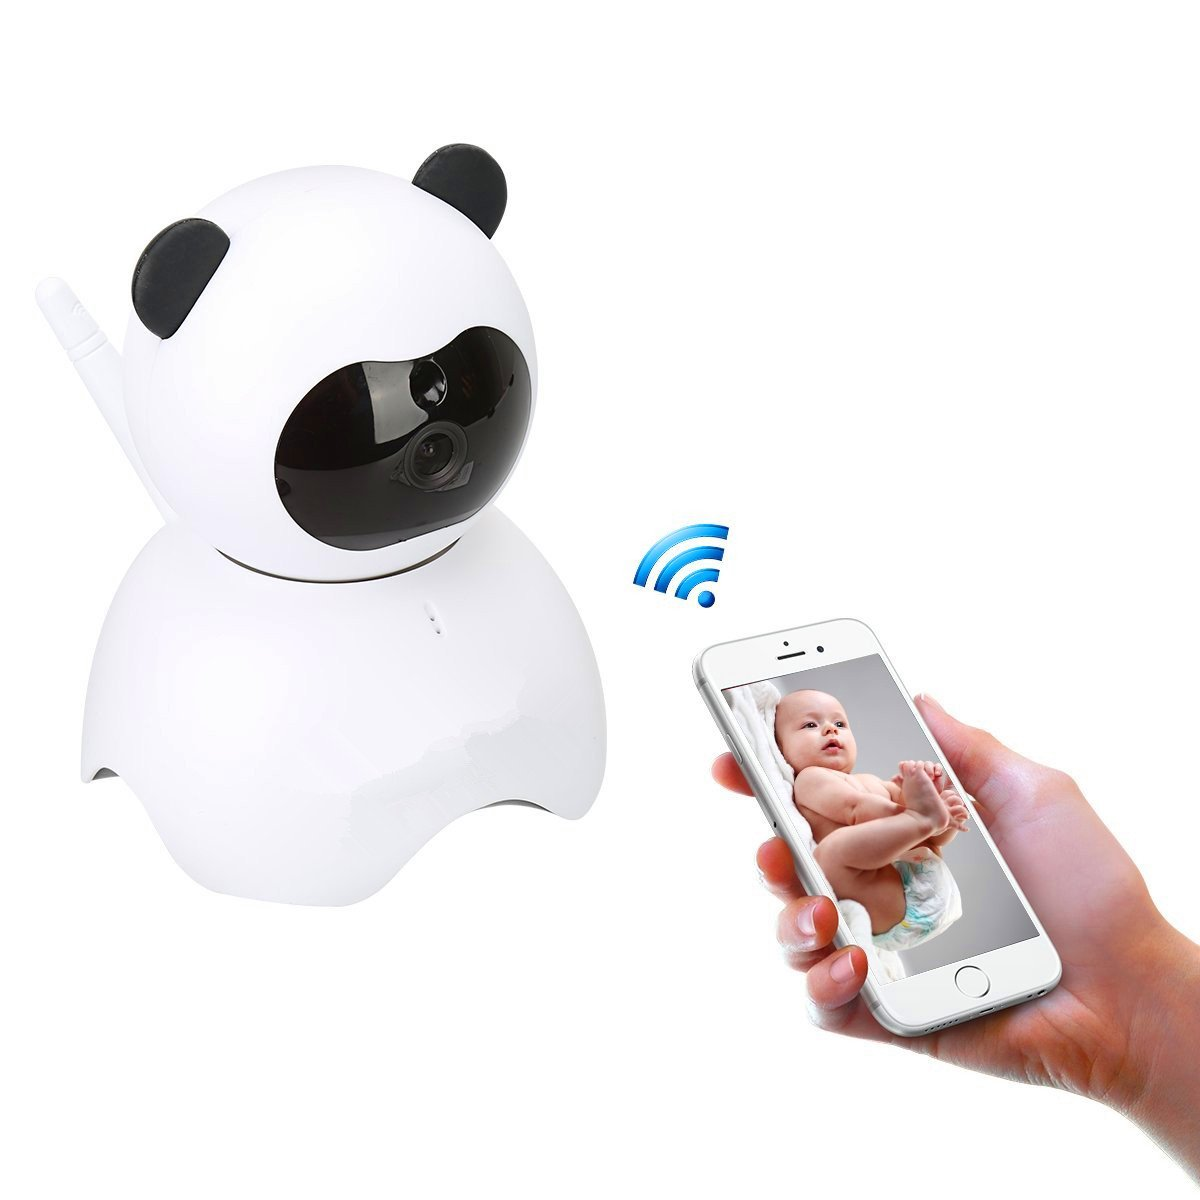 EsiCam Baby Monitor Wifi Hidden Camera Nanny Camera for Smart Phone, Toy Panda for Kids Pet Care HD 720P Pan Tilt Motion Detection Alarm Recording Two-way Audio Night Vision SD Card P2P Cloud Account